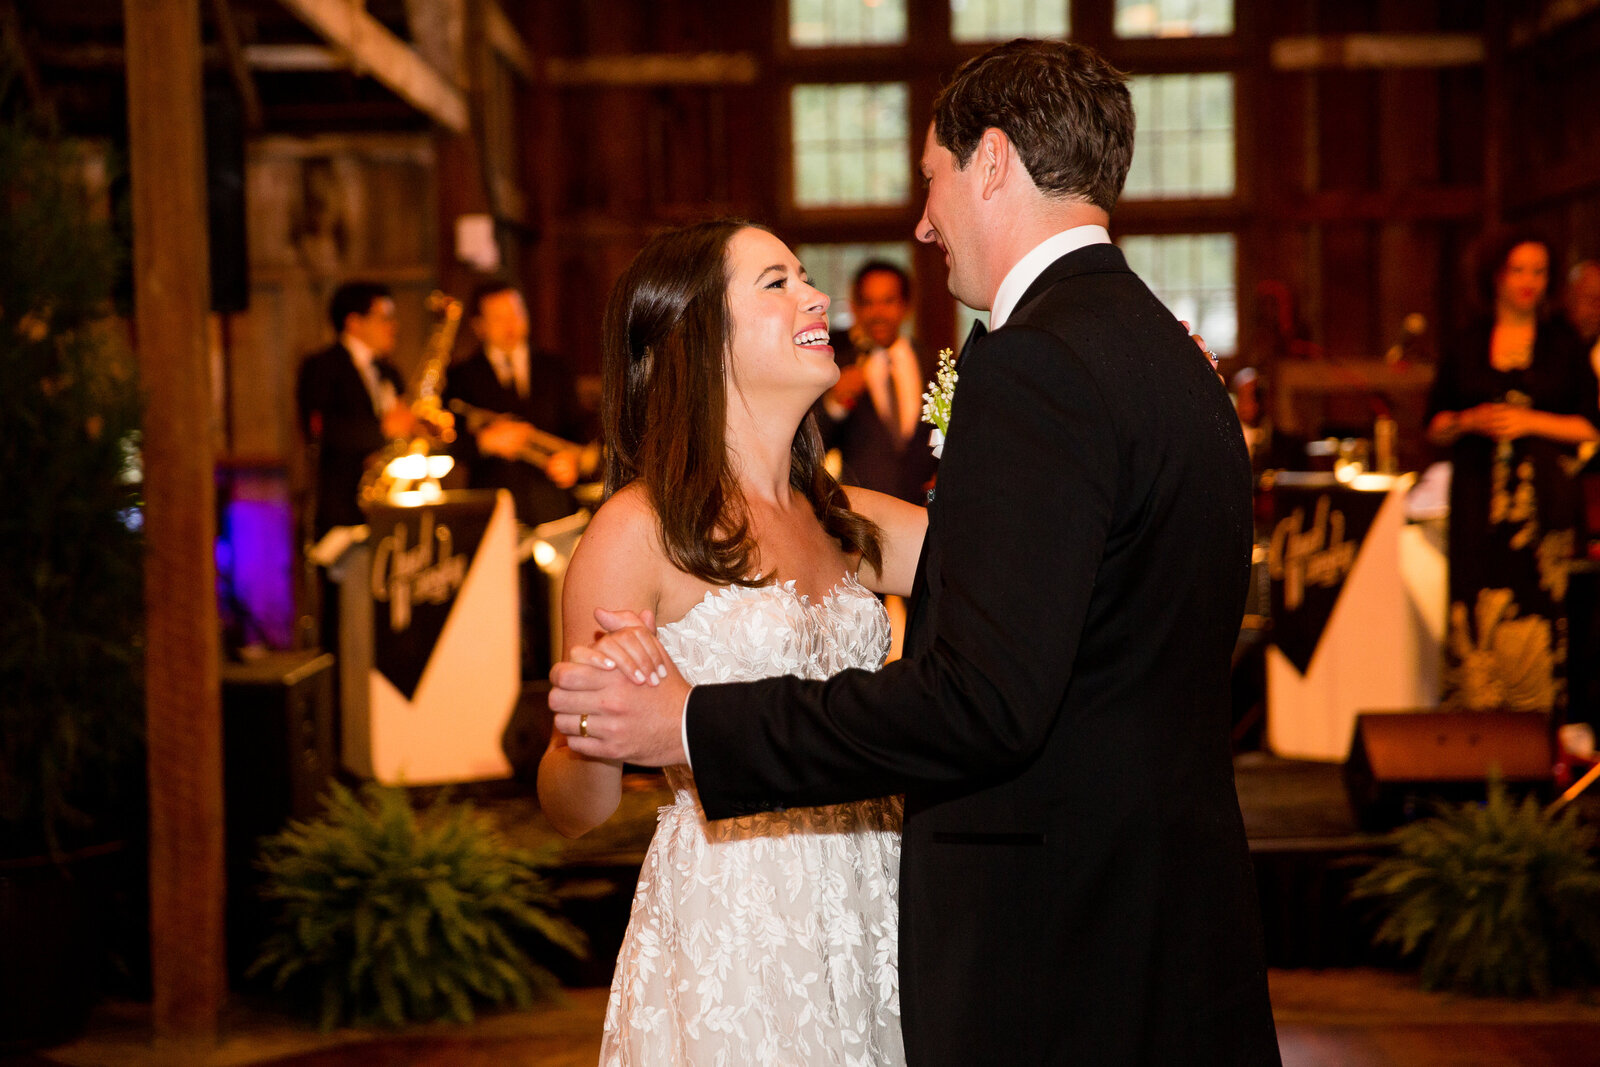 059_larissa-cleveland-photography-CJ-wedding-0860